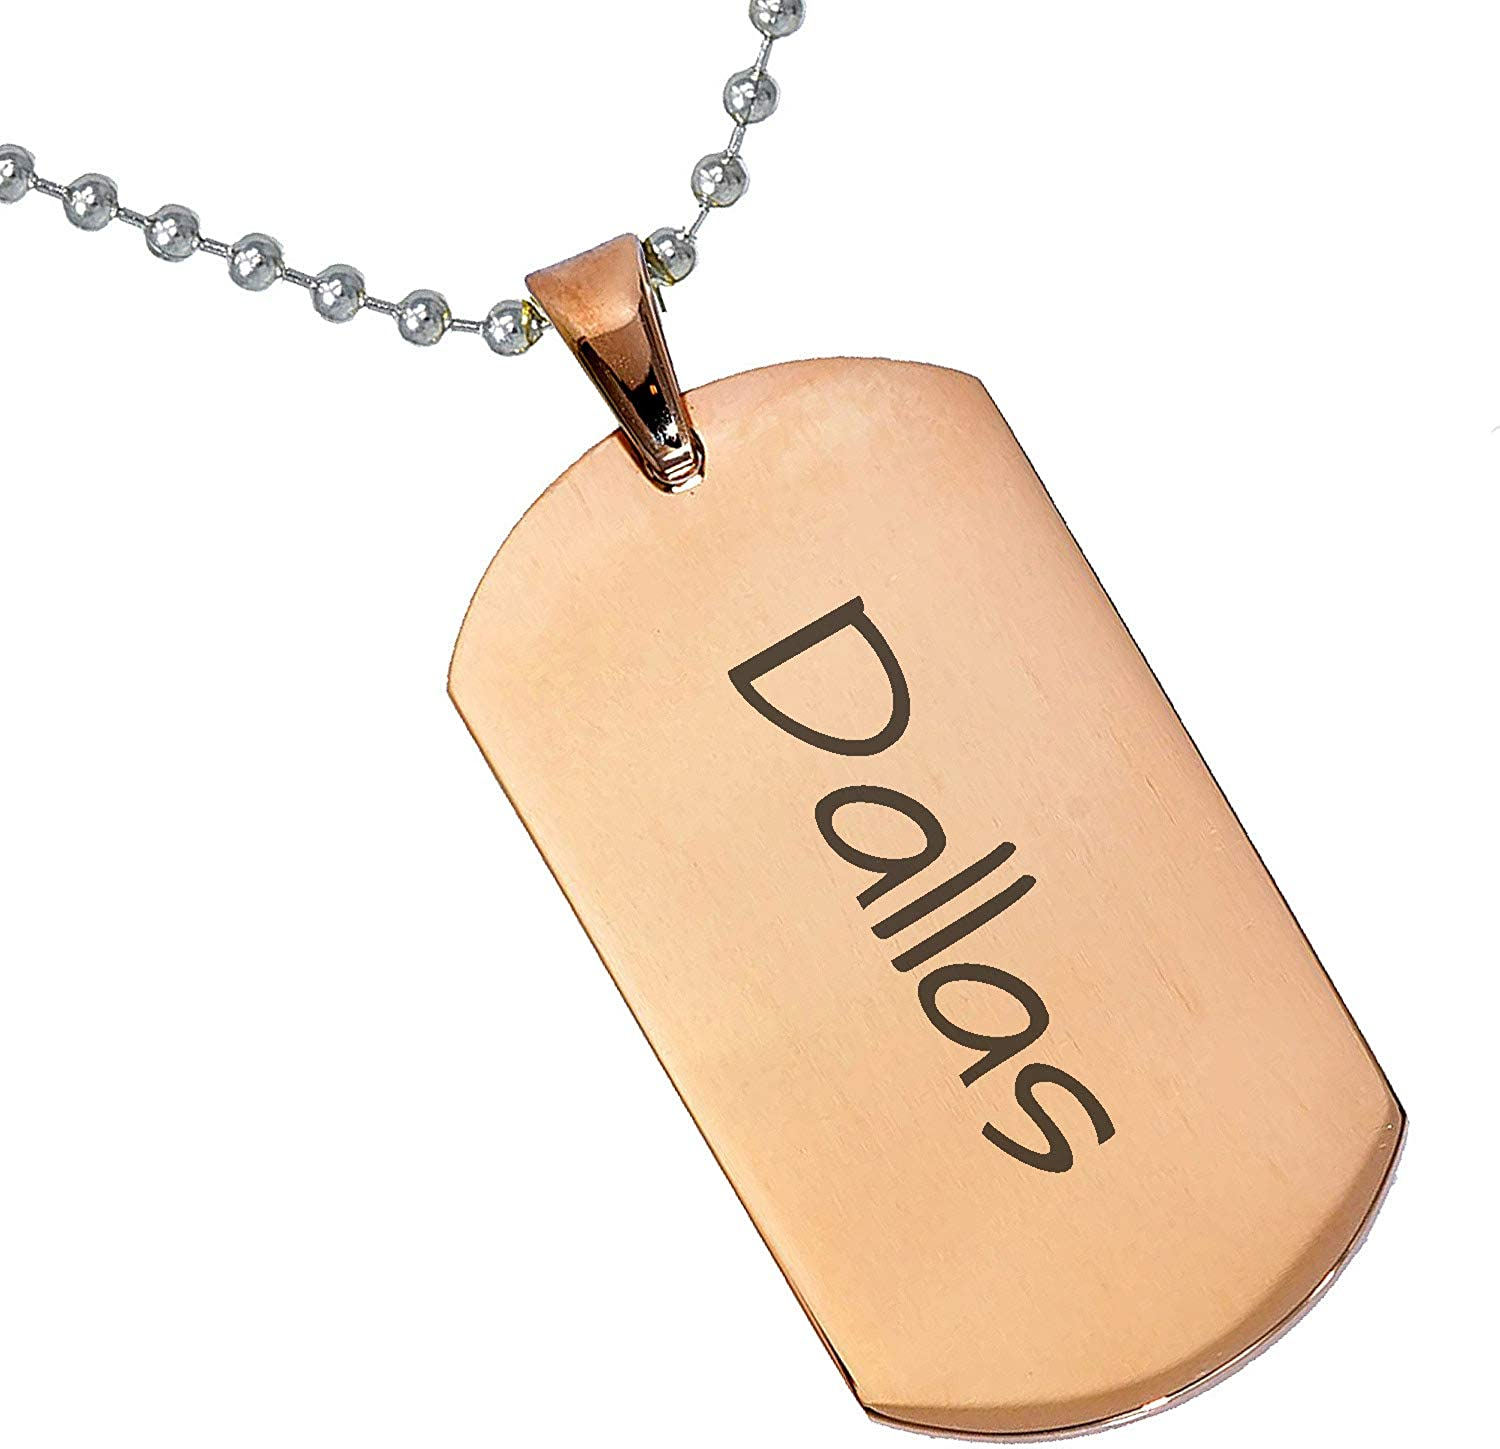 Stainless Steel Silver Gold Black Rose Gold Color Baby Name Dallas Engraved Personalized Gifts For Son Daughter Boyfriend Girlfriend Initial Customizable Pendant Necklace Dog Tags 24 Ball Chain